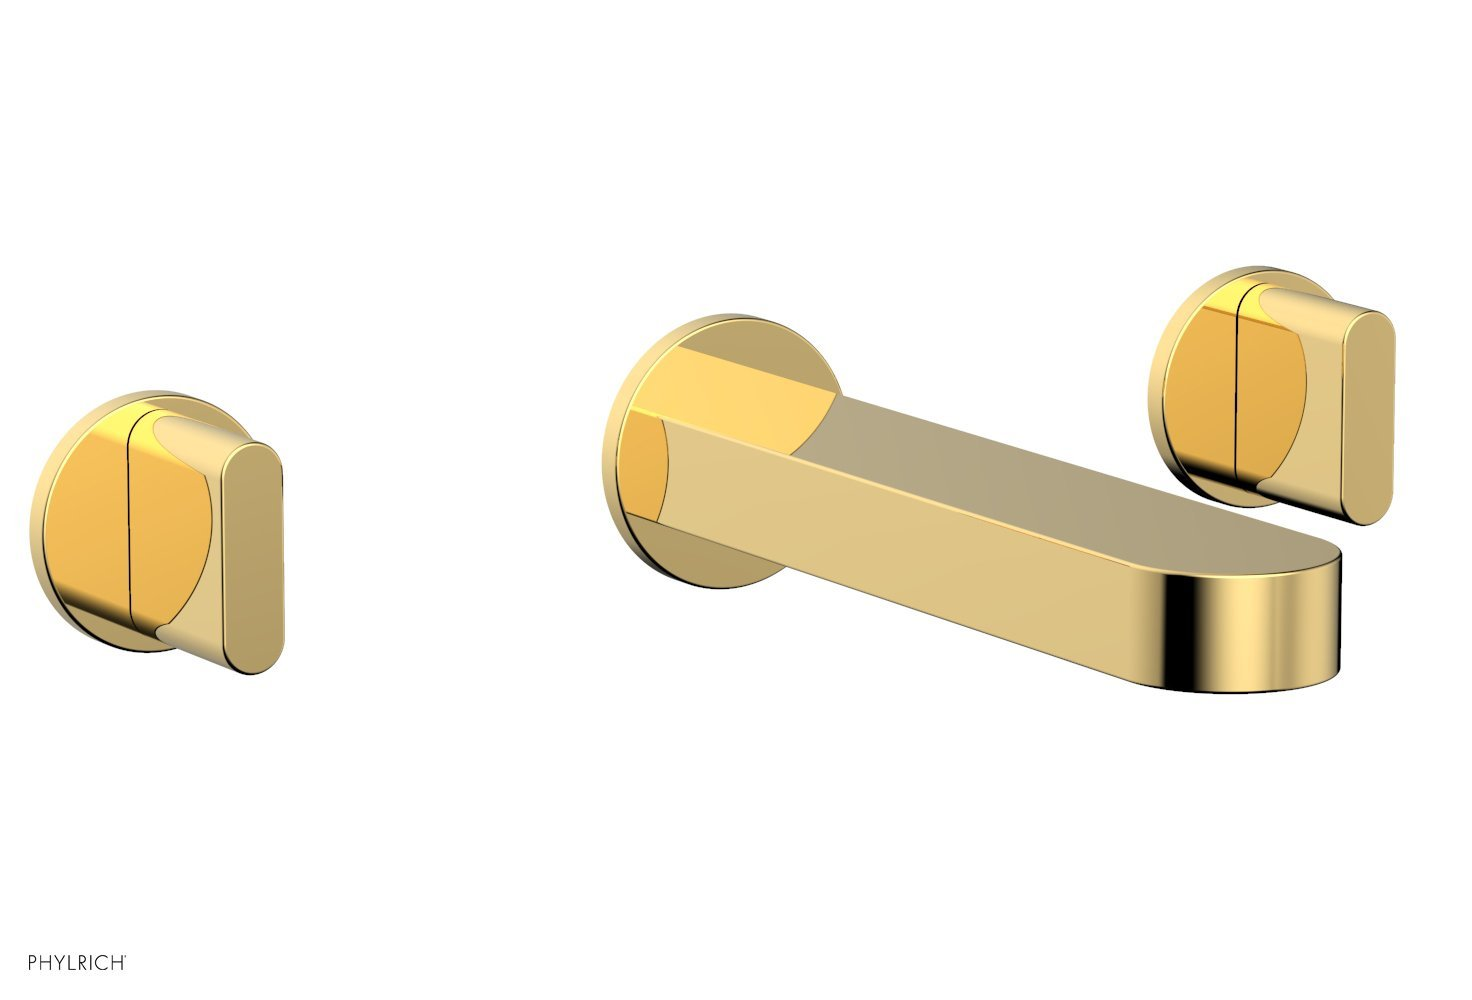 Phylrich 183-56-025 ROND Wall Tub Set - Blade Handles - Polished Gold